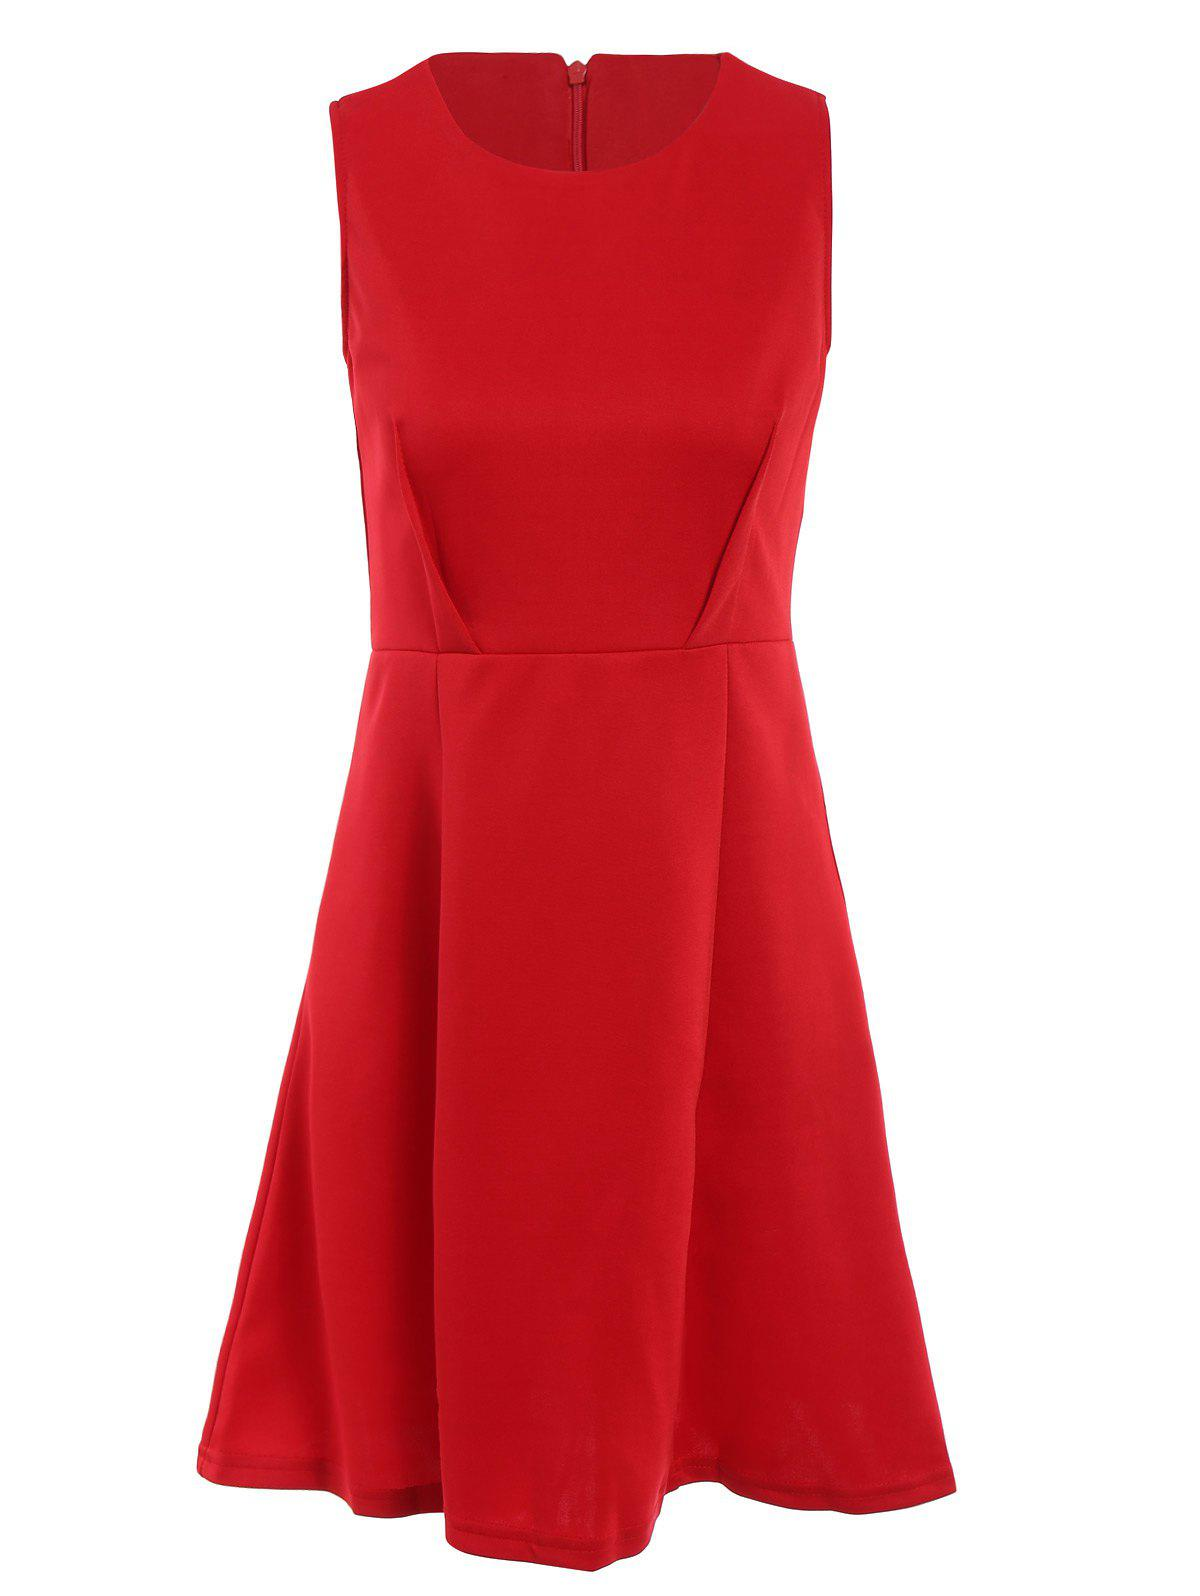 Christmas Women's Scoop Neck Sleeveless Solid Color A-Line Dress